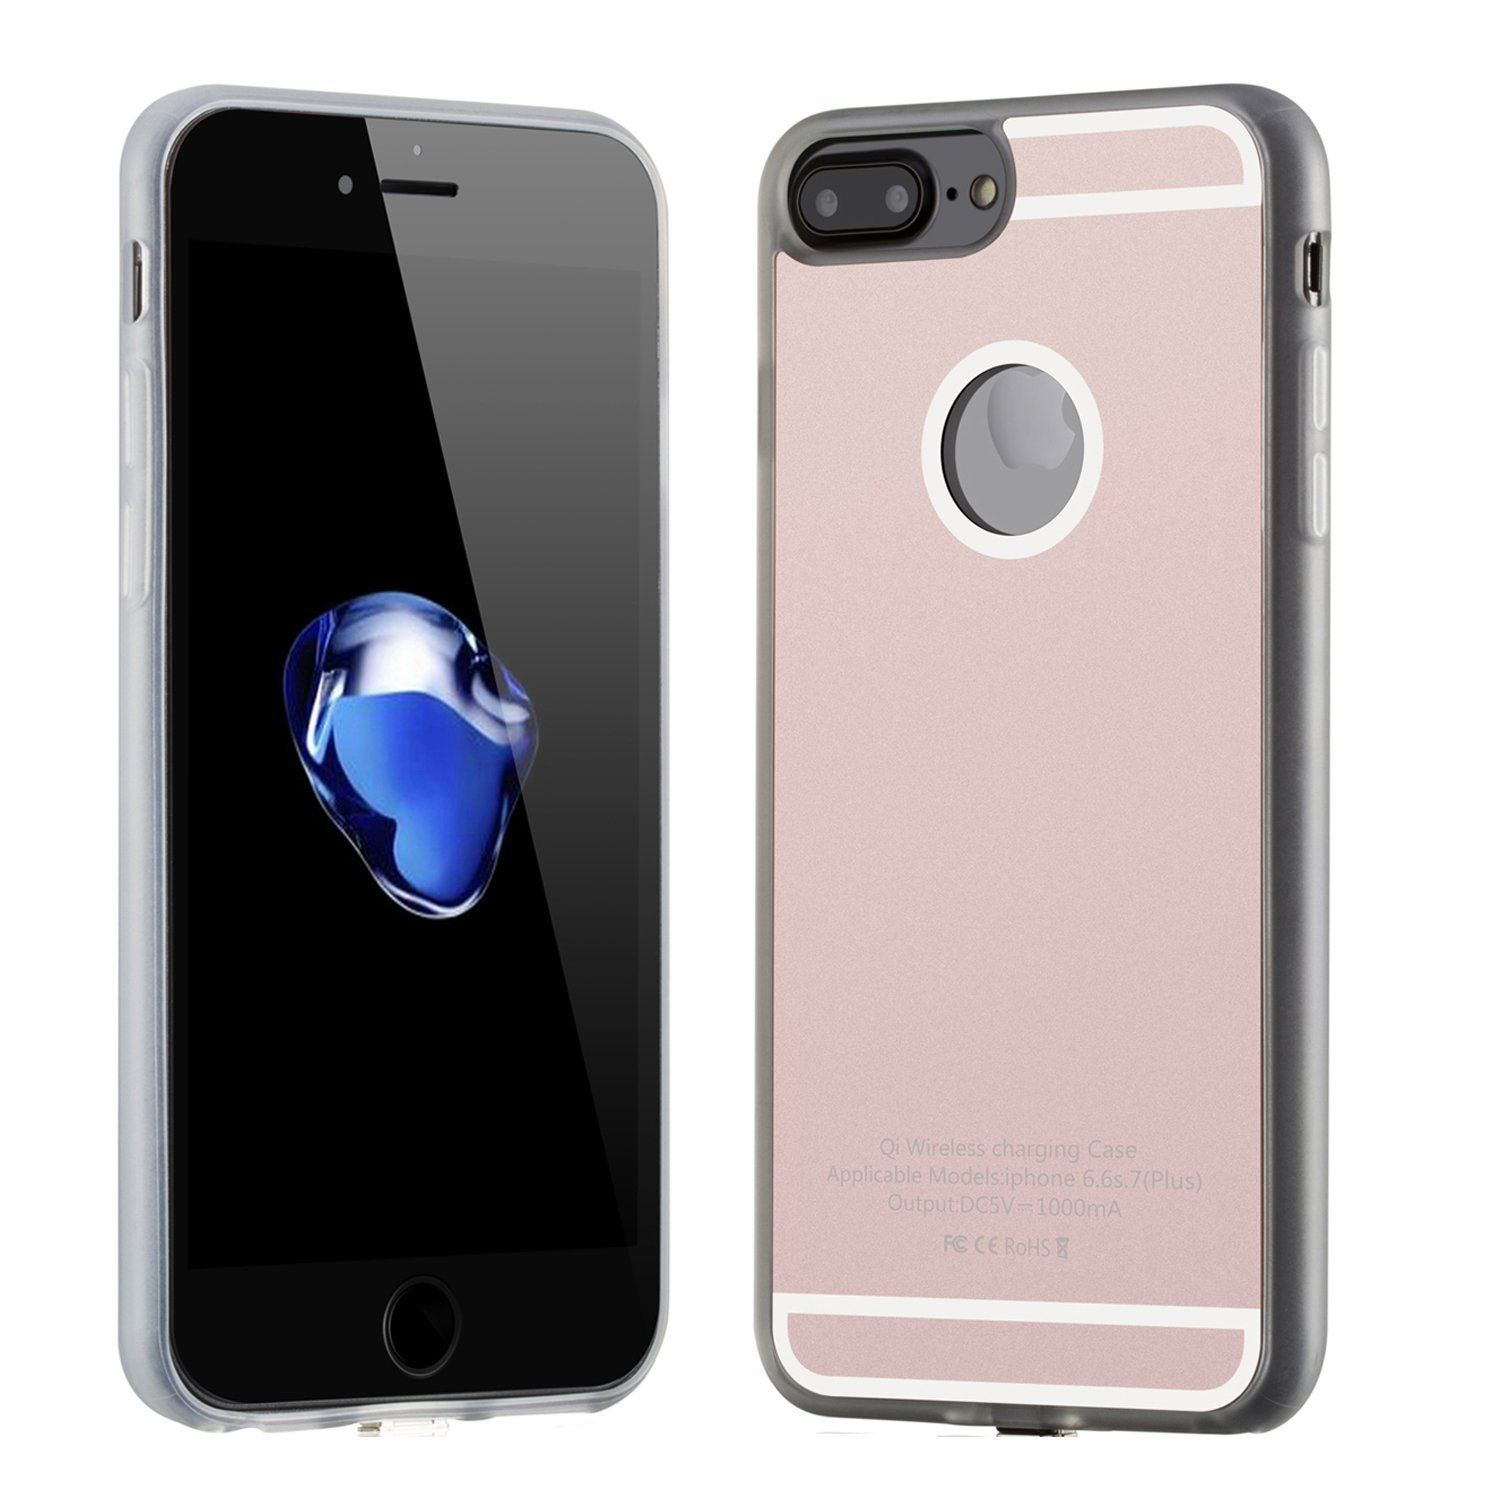 Apple iPhone 7 Cover with integrated Qi Wireless Protective Case